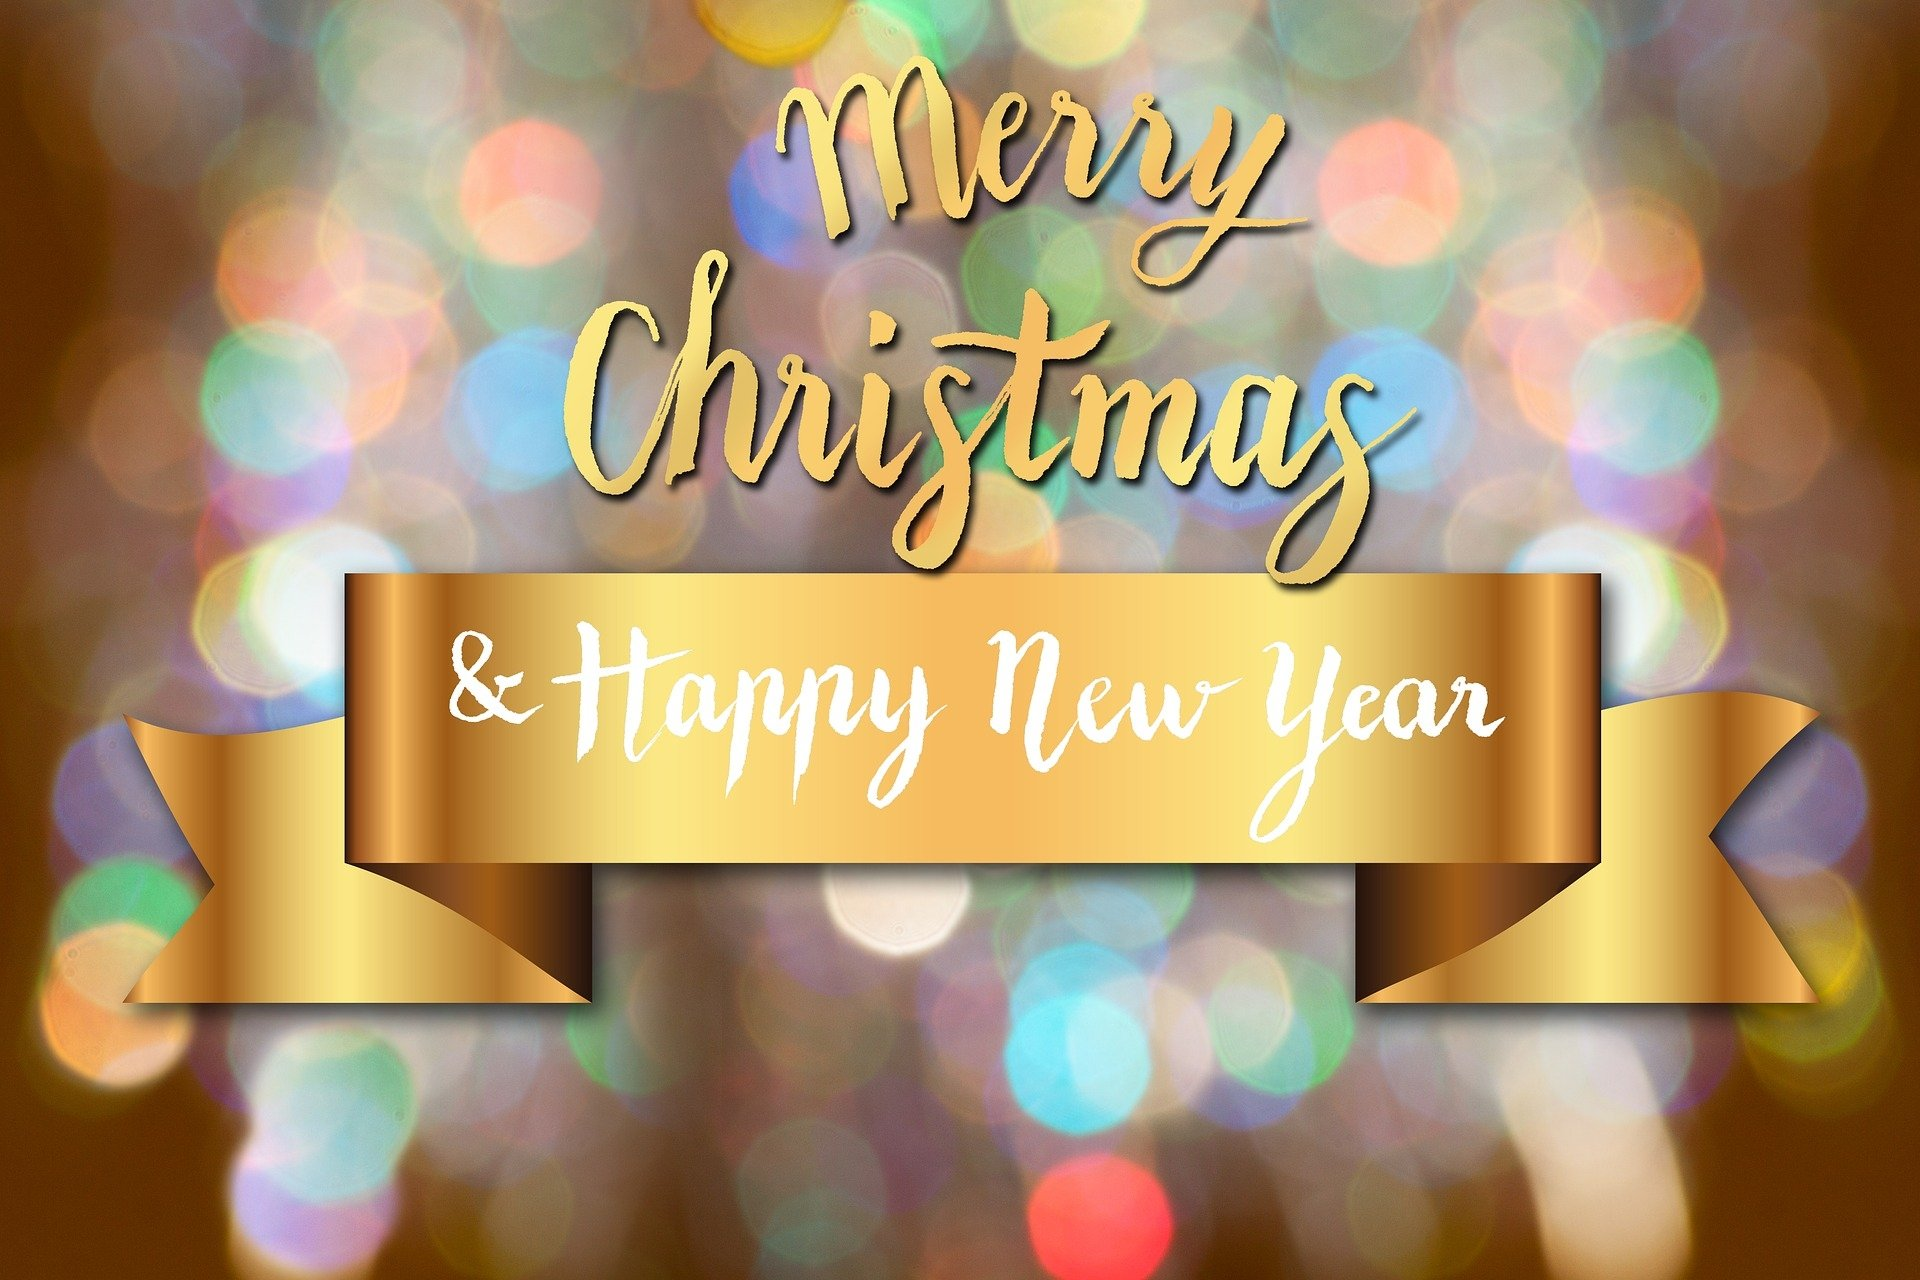 download Merry Christmas Gifs and Happy New Year 2020 1920x1280